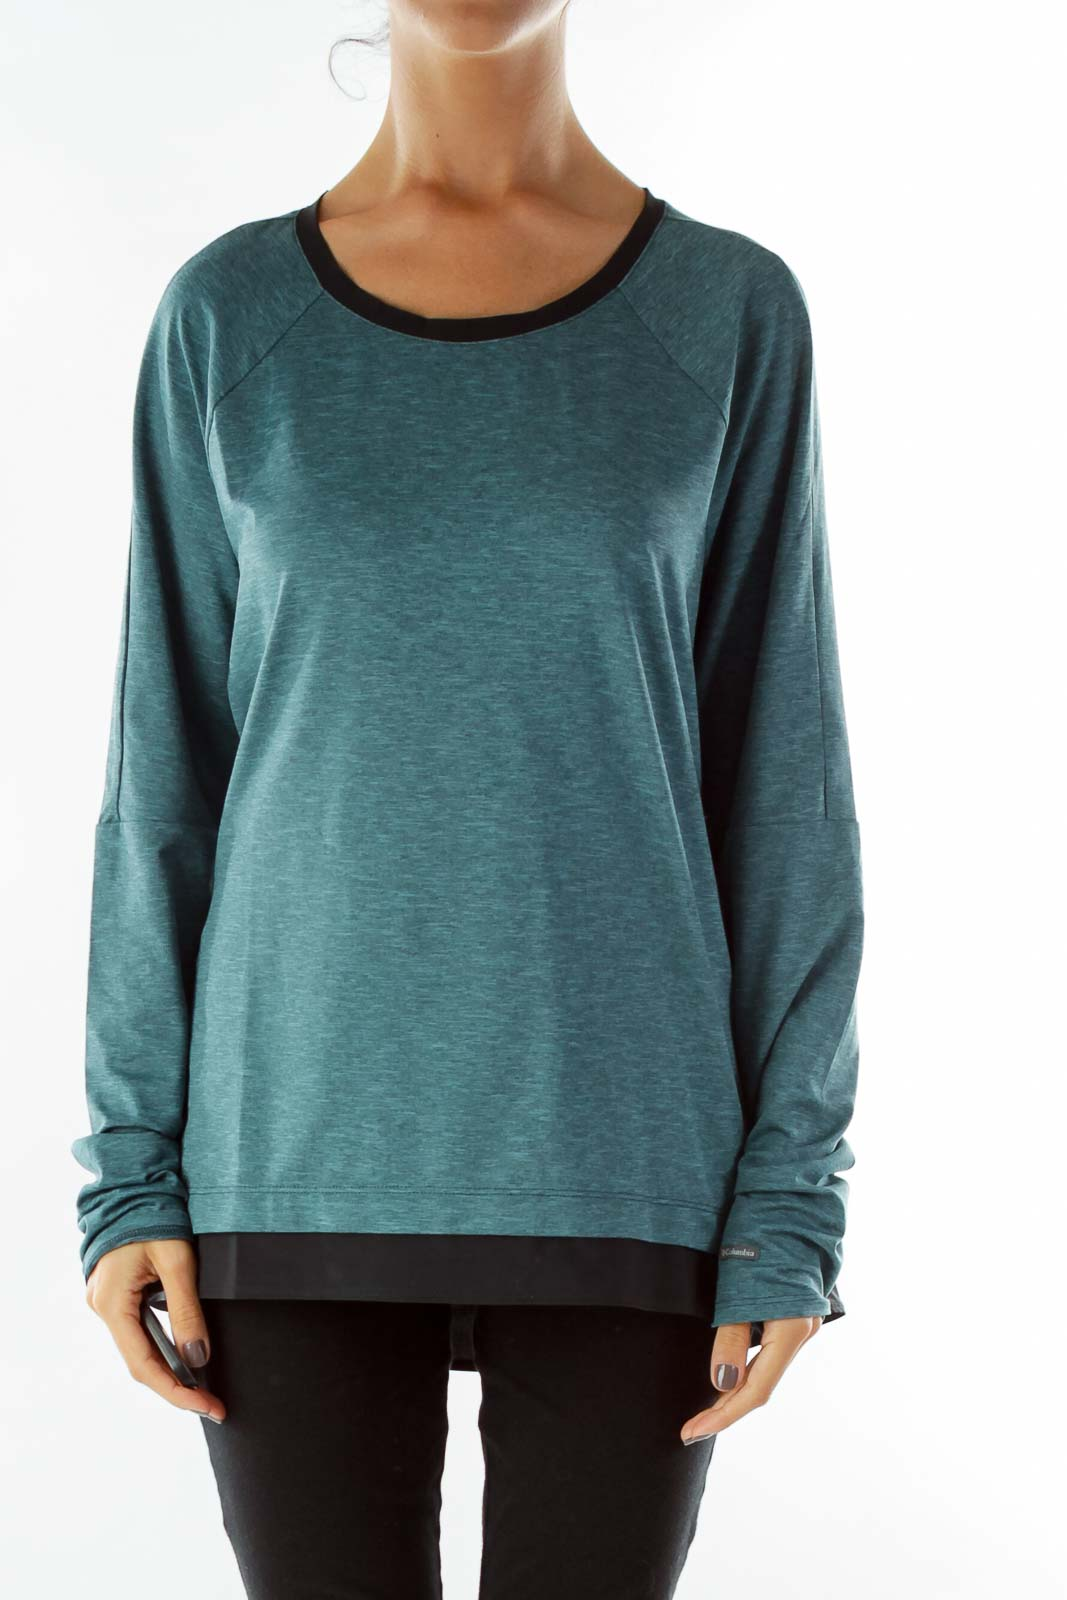 Blue Mottled Sports Top